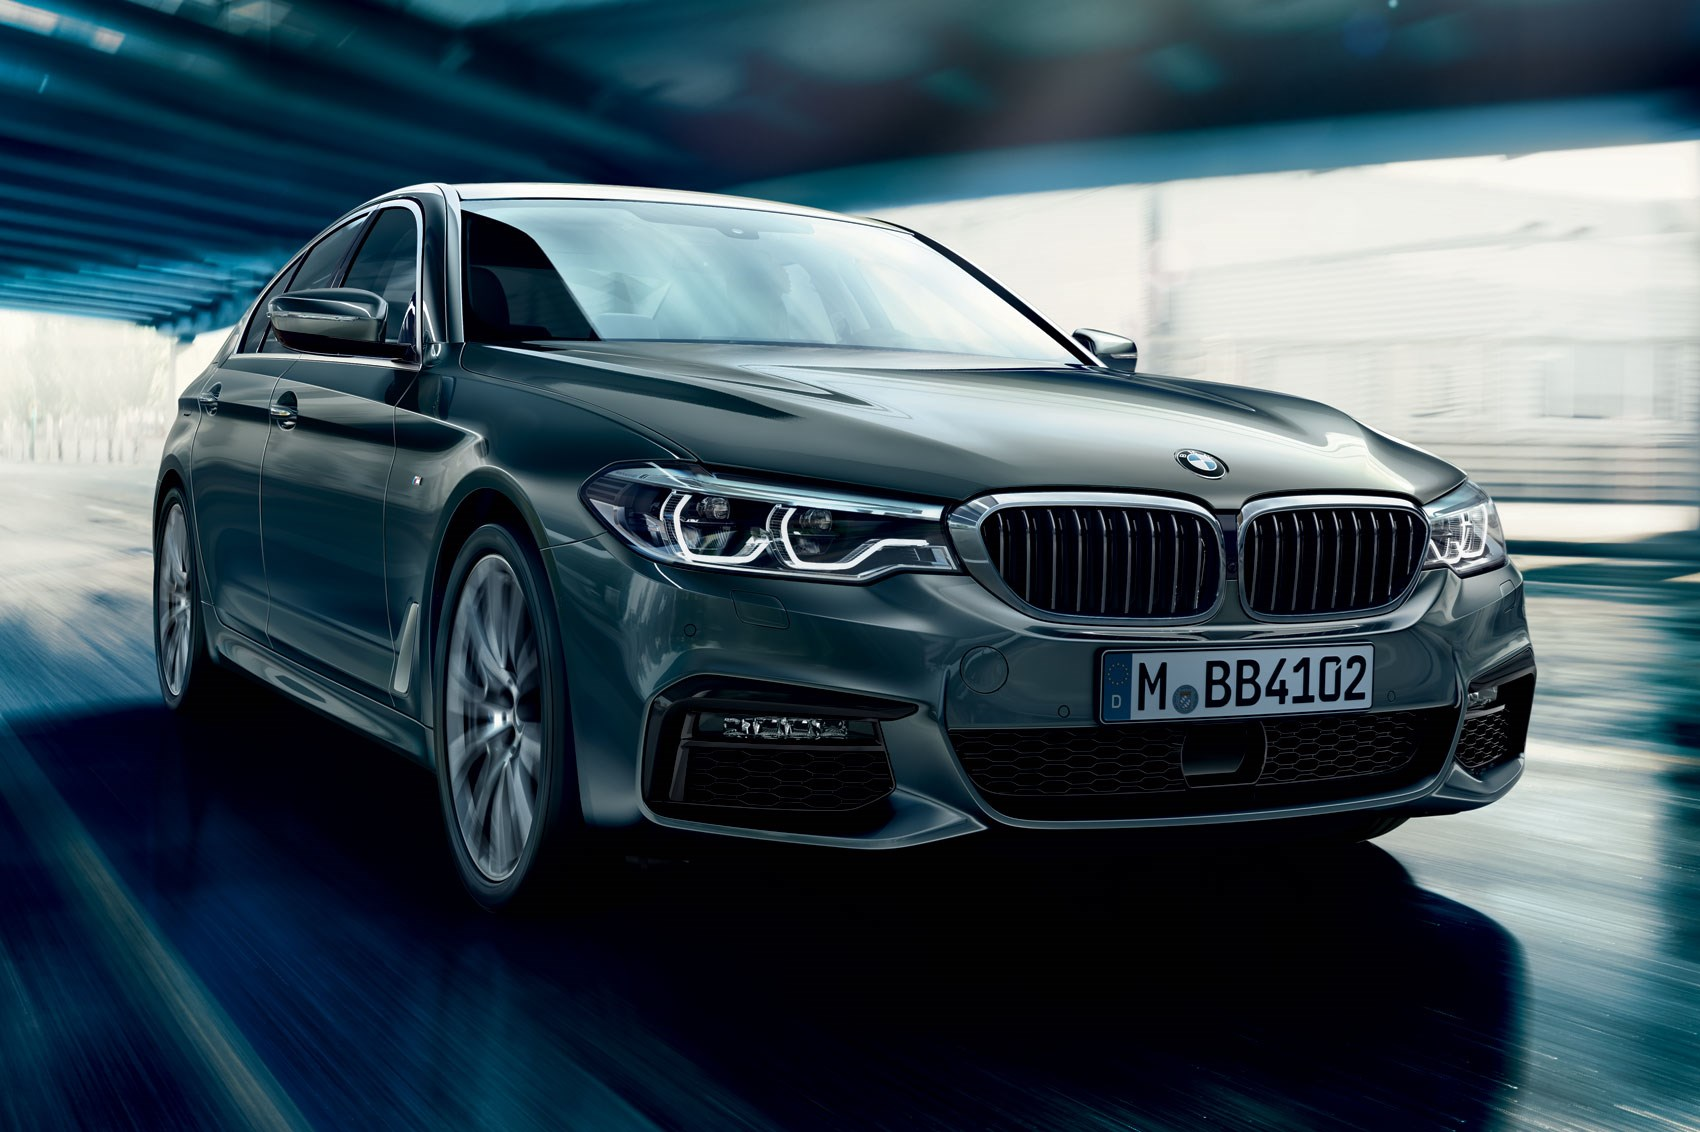 New 2017 BMW 5 Series Revealed Lighter Quicker More Advanced